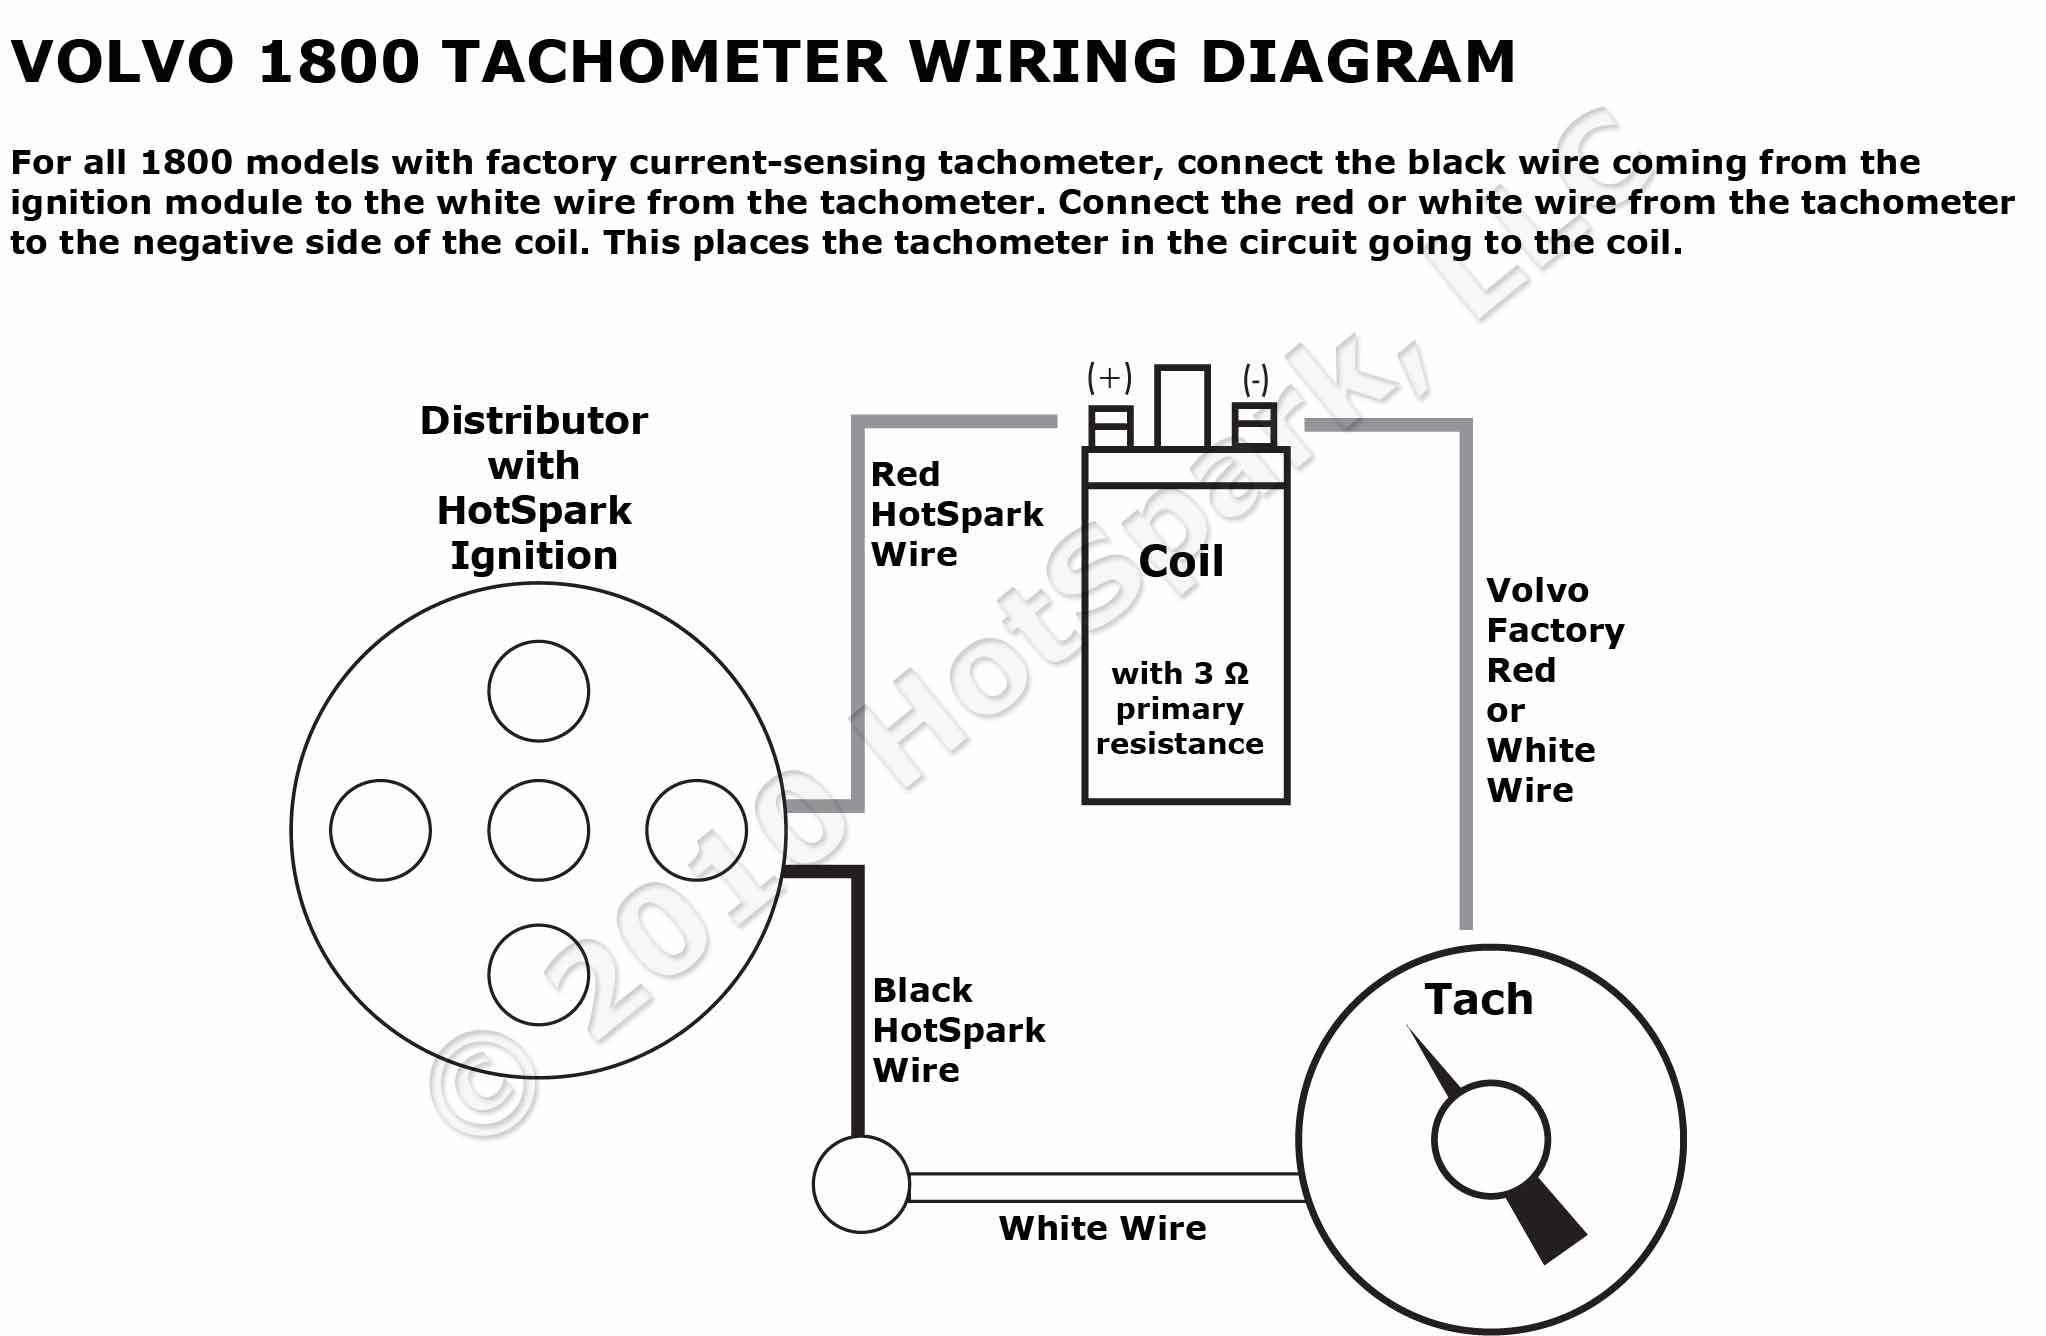 Volvo 1800 Wiring Diagram on omc tachometer wiring diagram